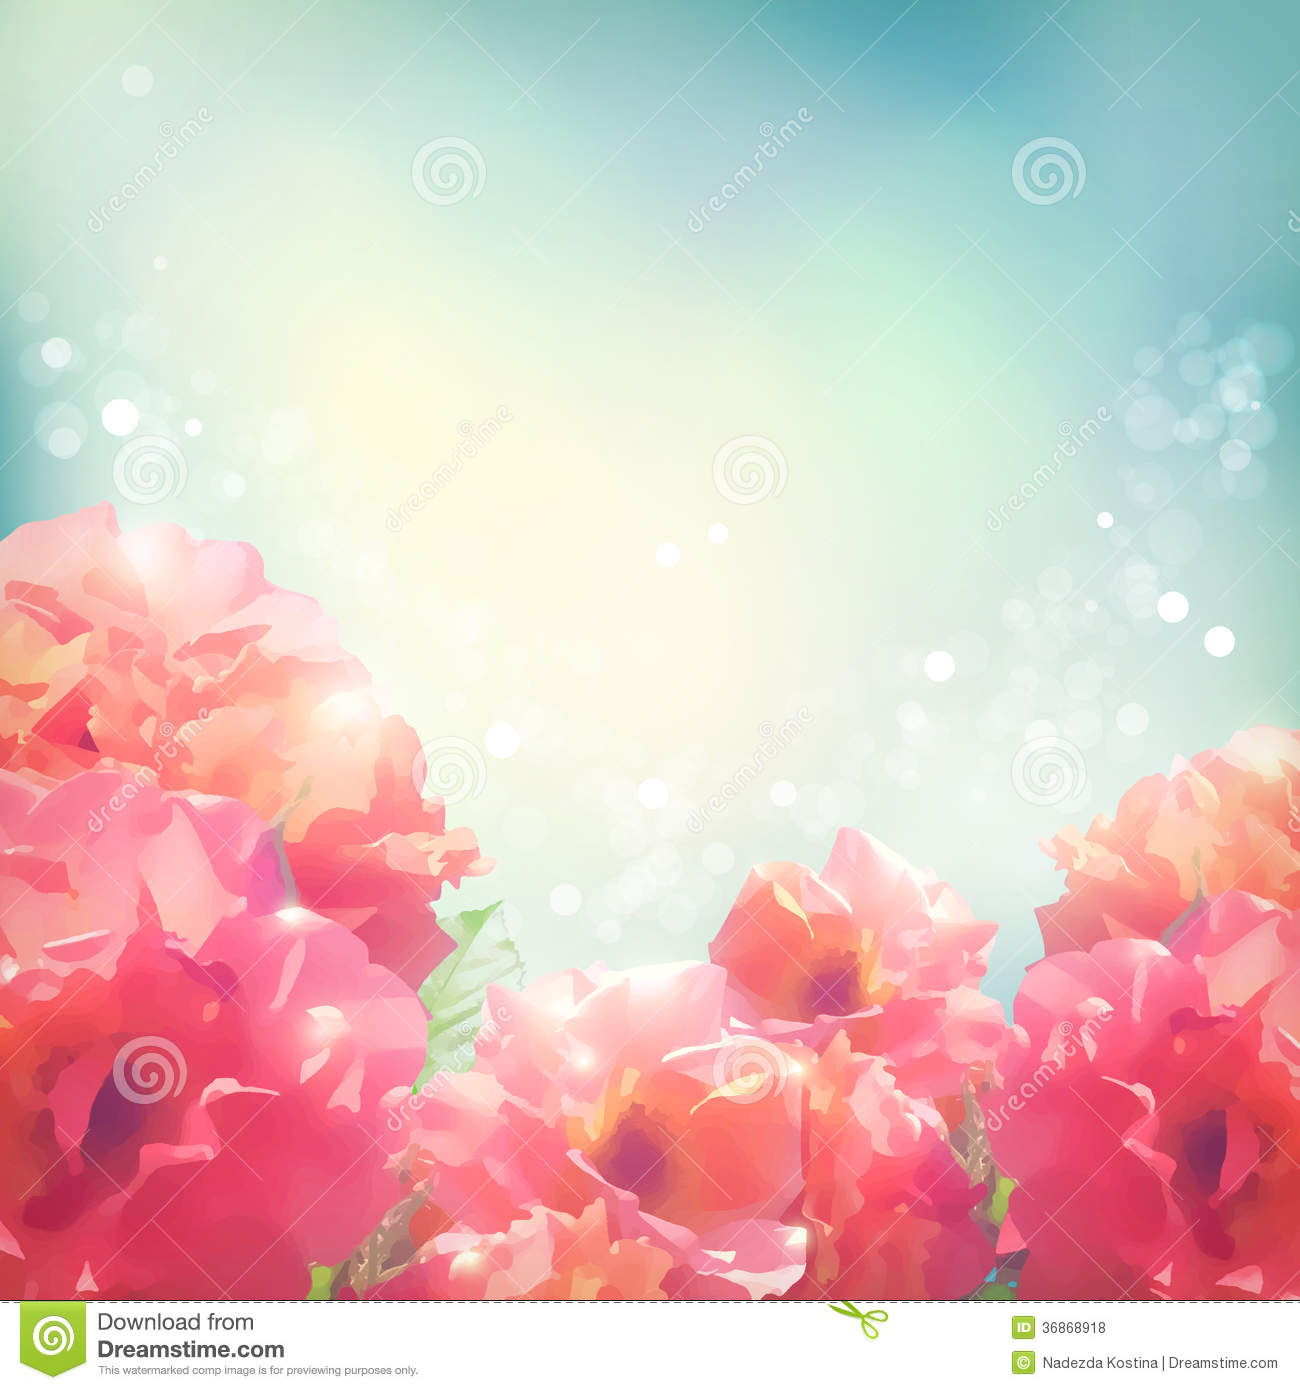 Shining Flowers Roses (peonies) Background Royalty Free